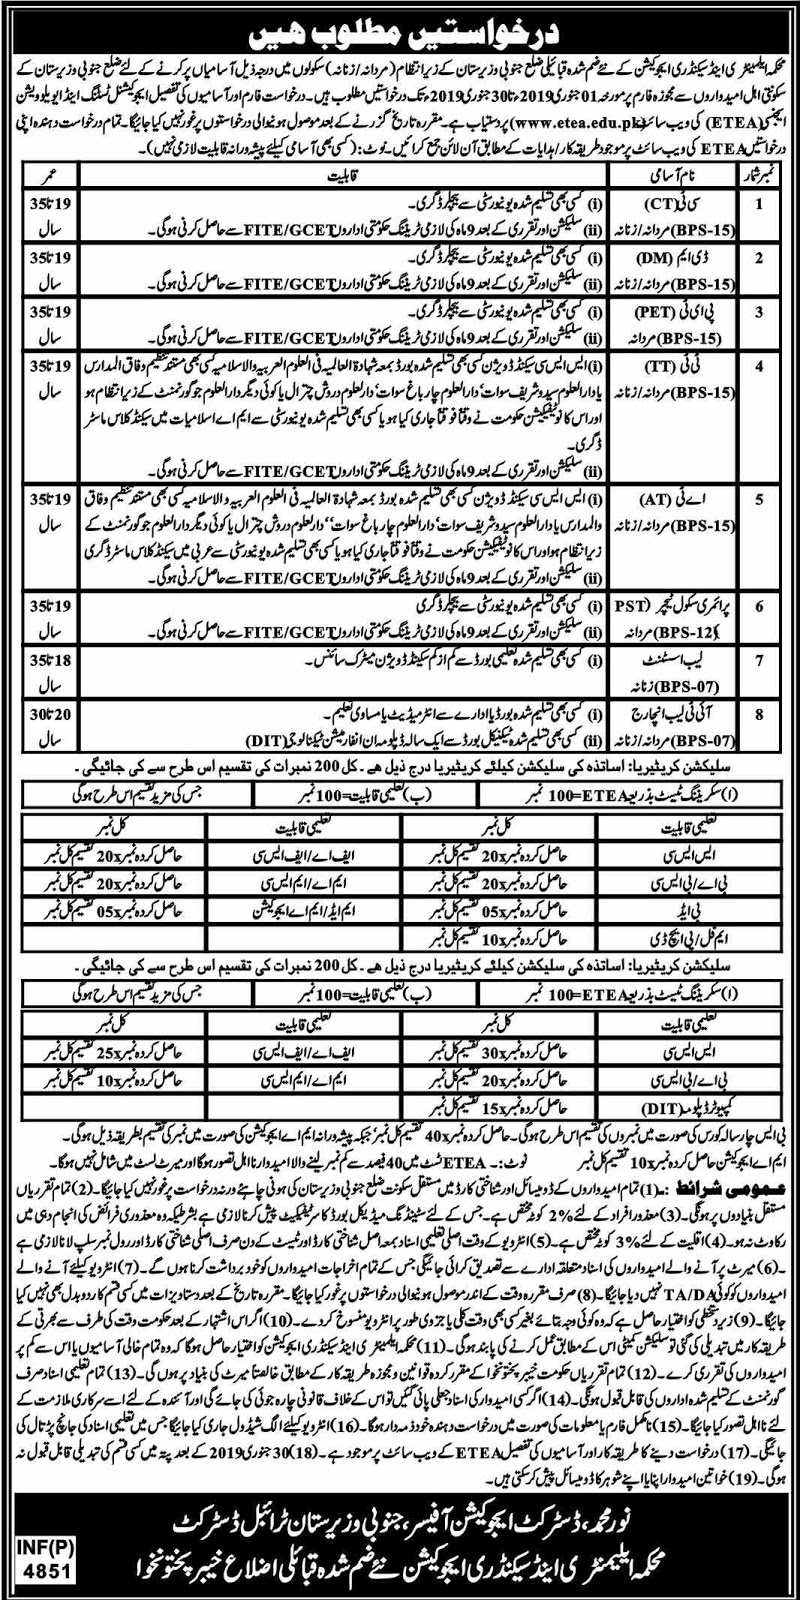 CT, DM, PET, Qari, Qaria, SST Jobs in Elementary and Secondary Education Waziristan Apply through ETEA